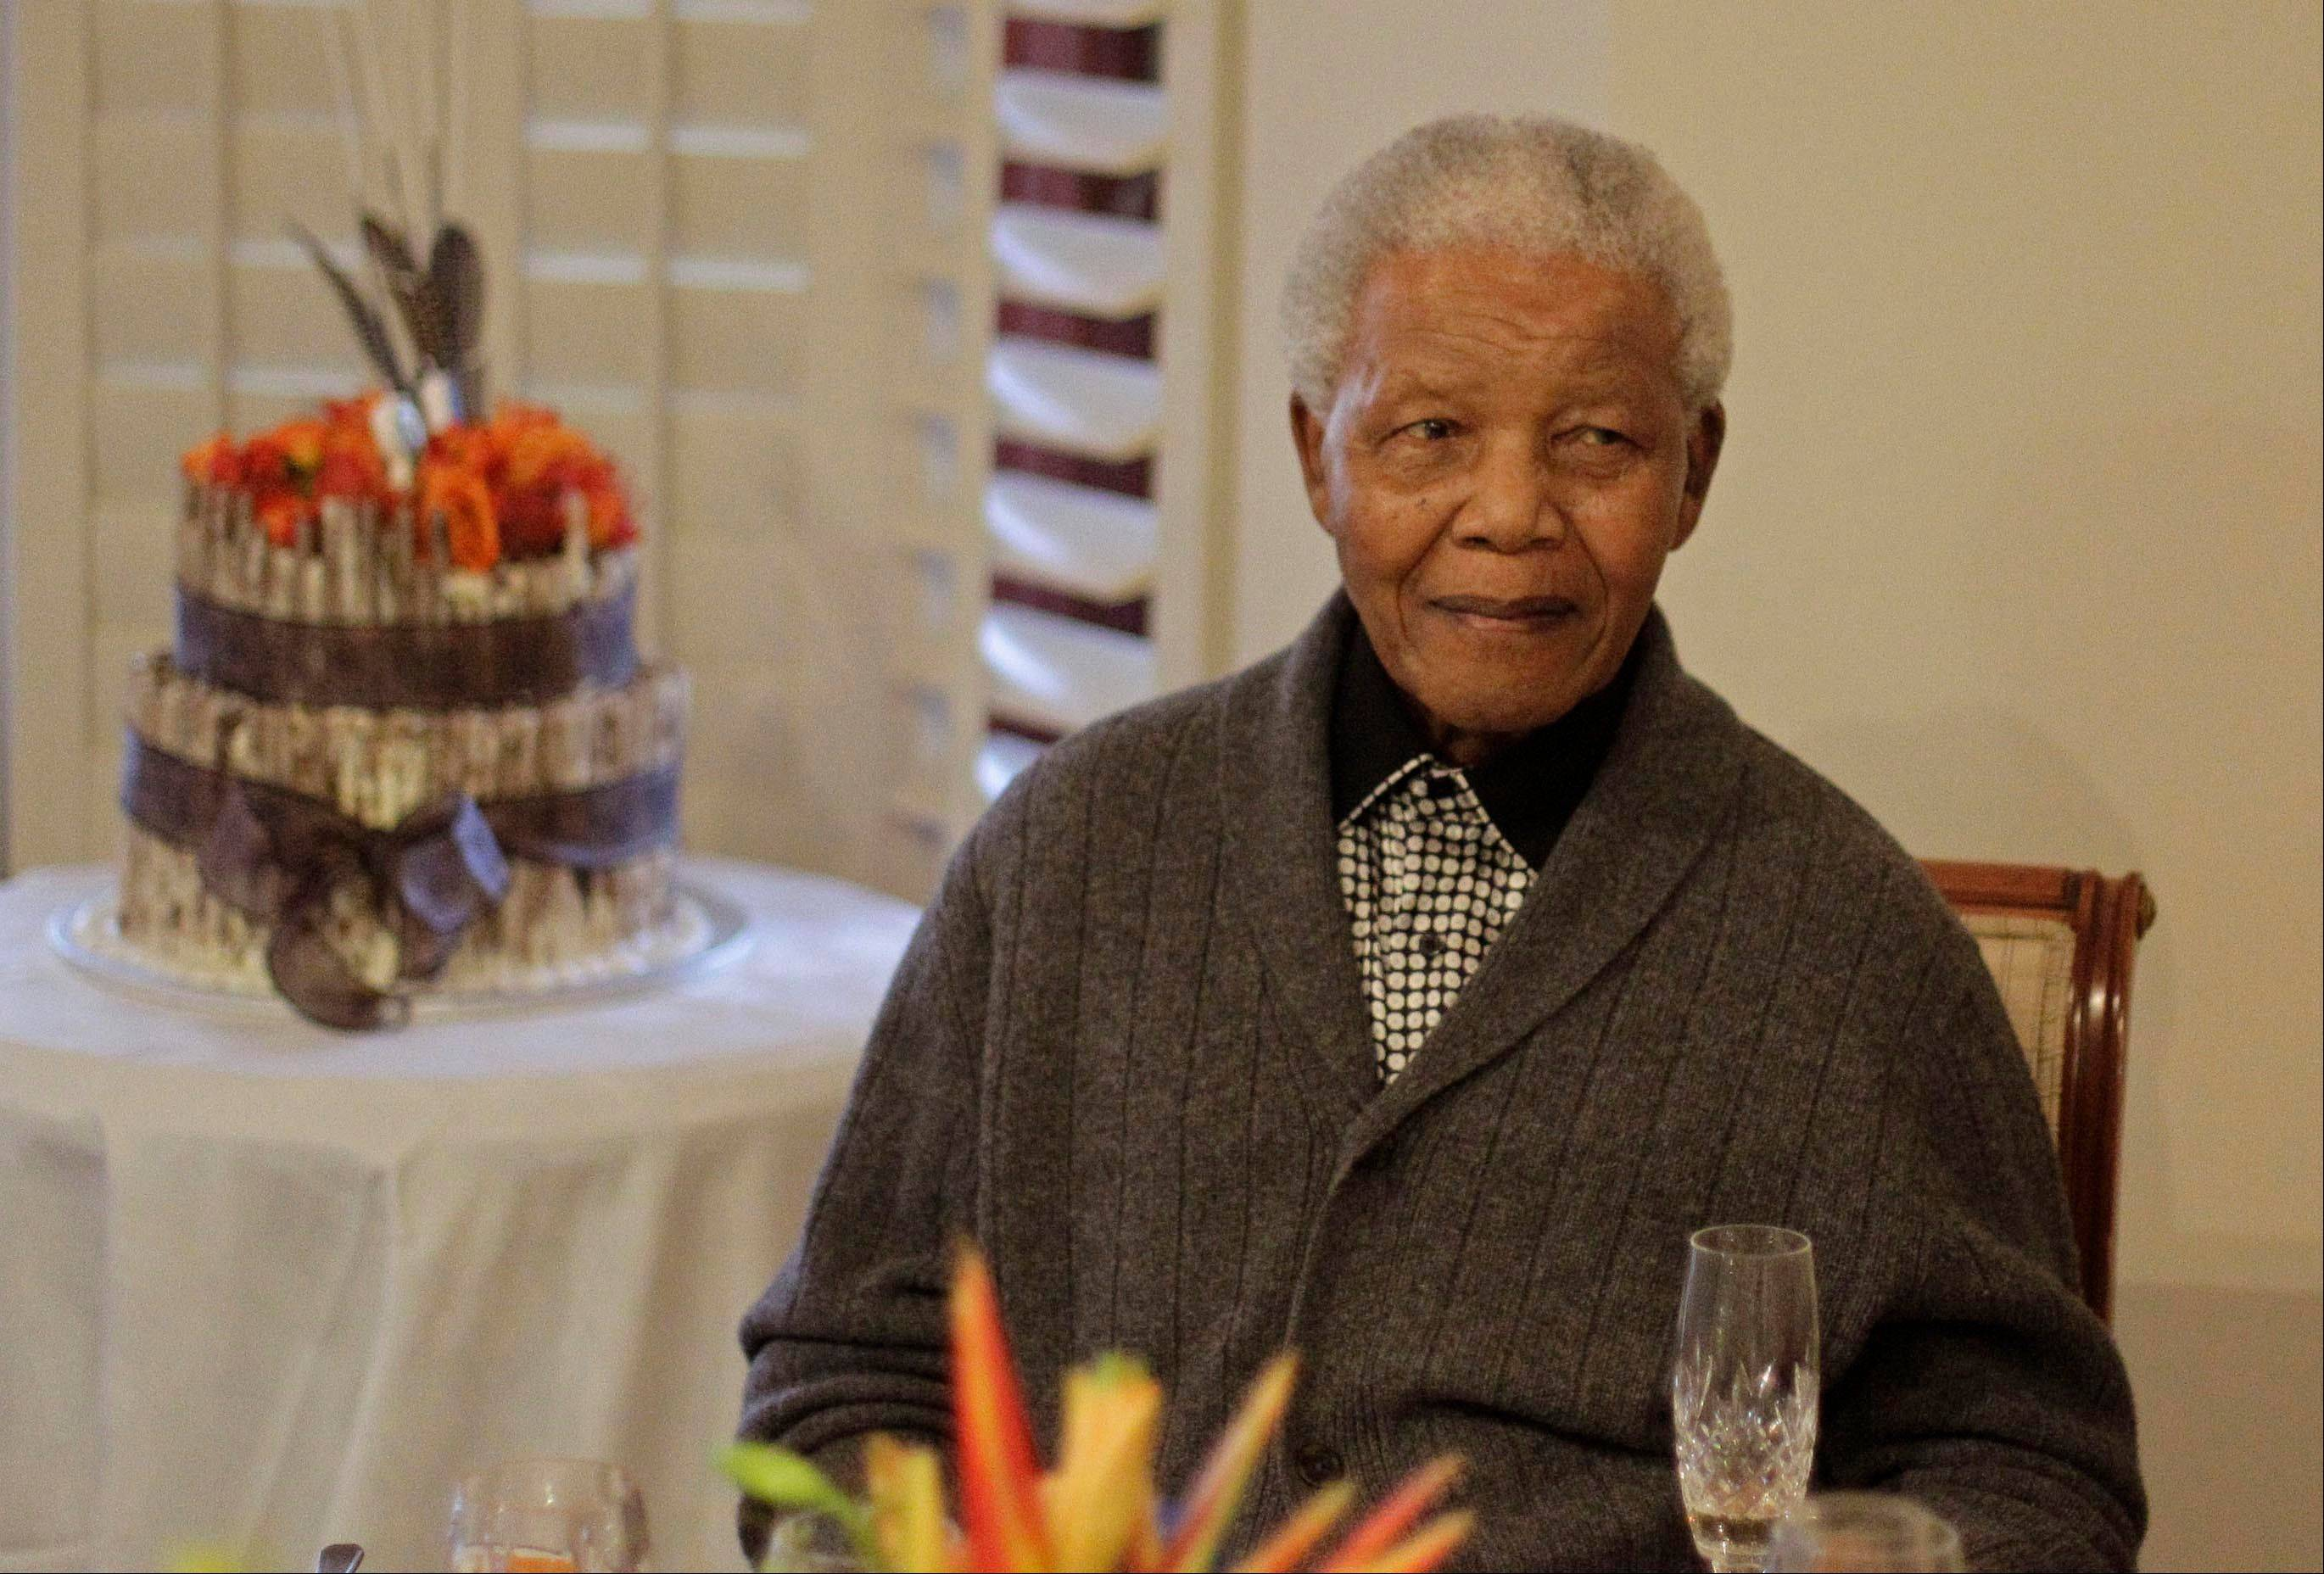 "In this file photo, former South African President Nelson Mandela celebrated his 94th birthday in July in Qunu, South Africa. A South African official says Mandela is breathing ""without difficulty"" after having a procedure to clear fluid in his lung area that was caused by pneumonia."